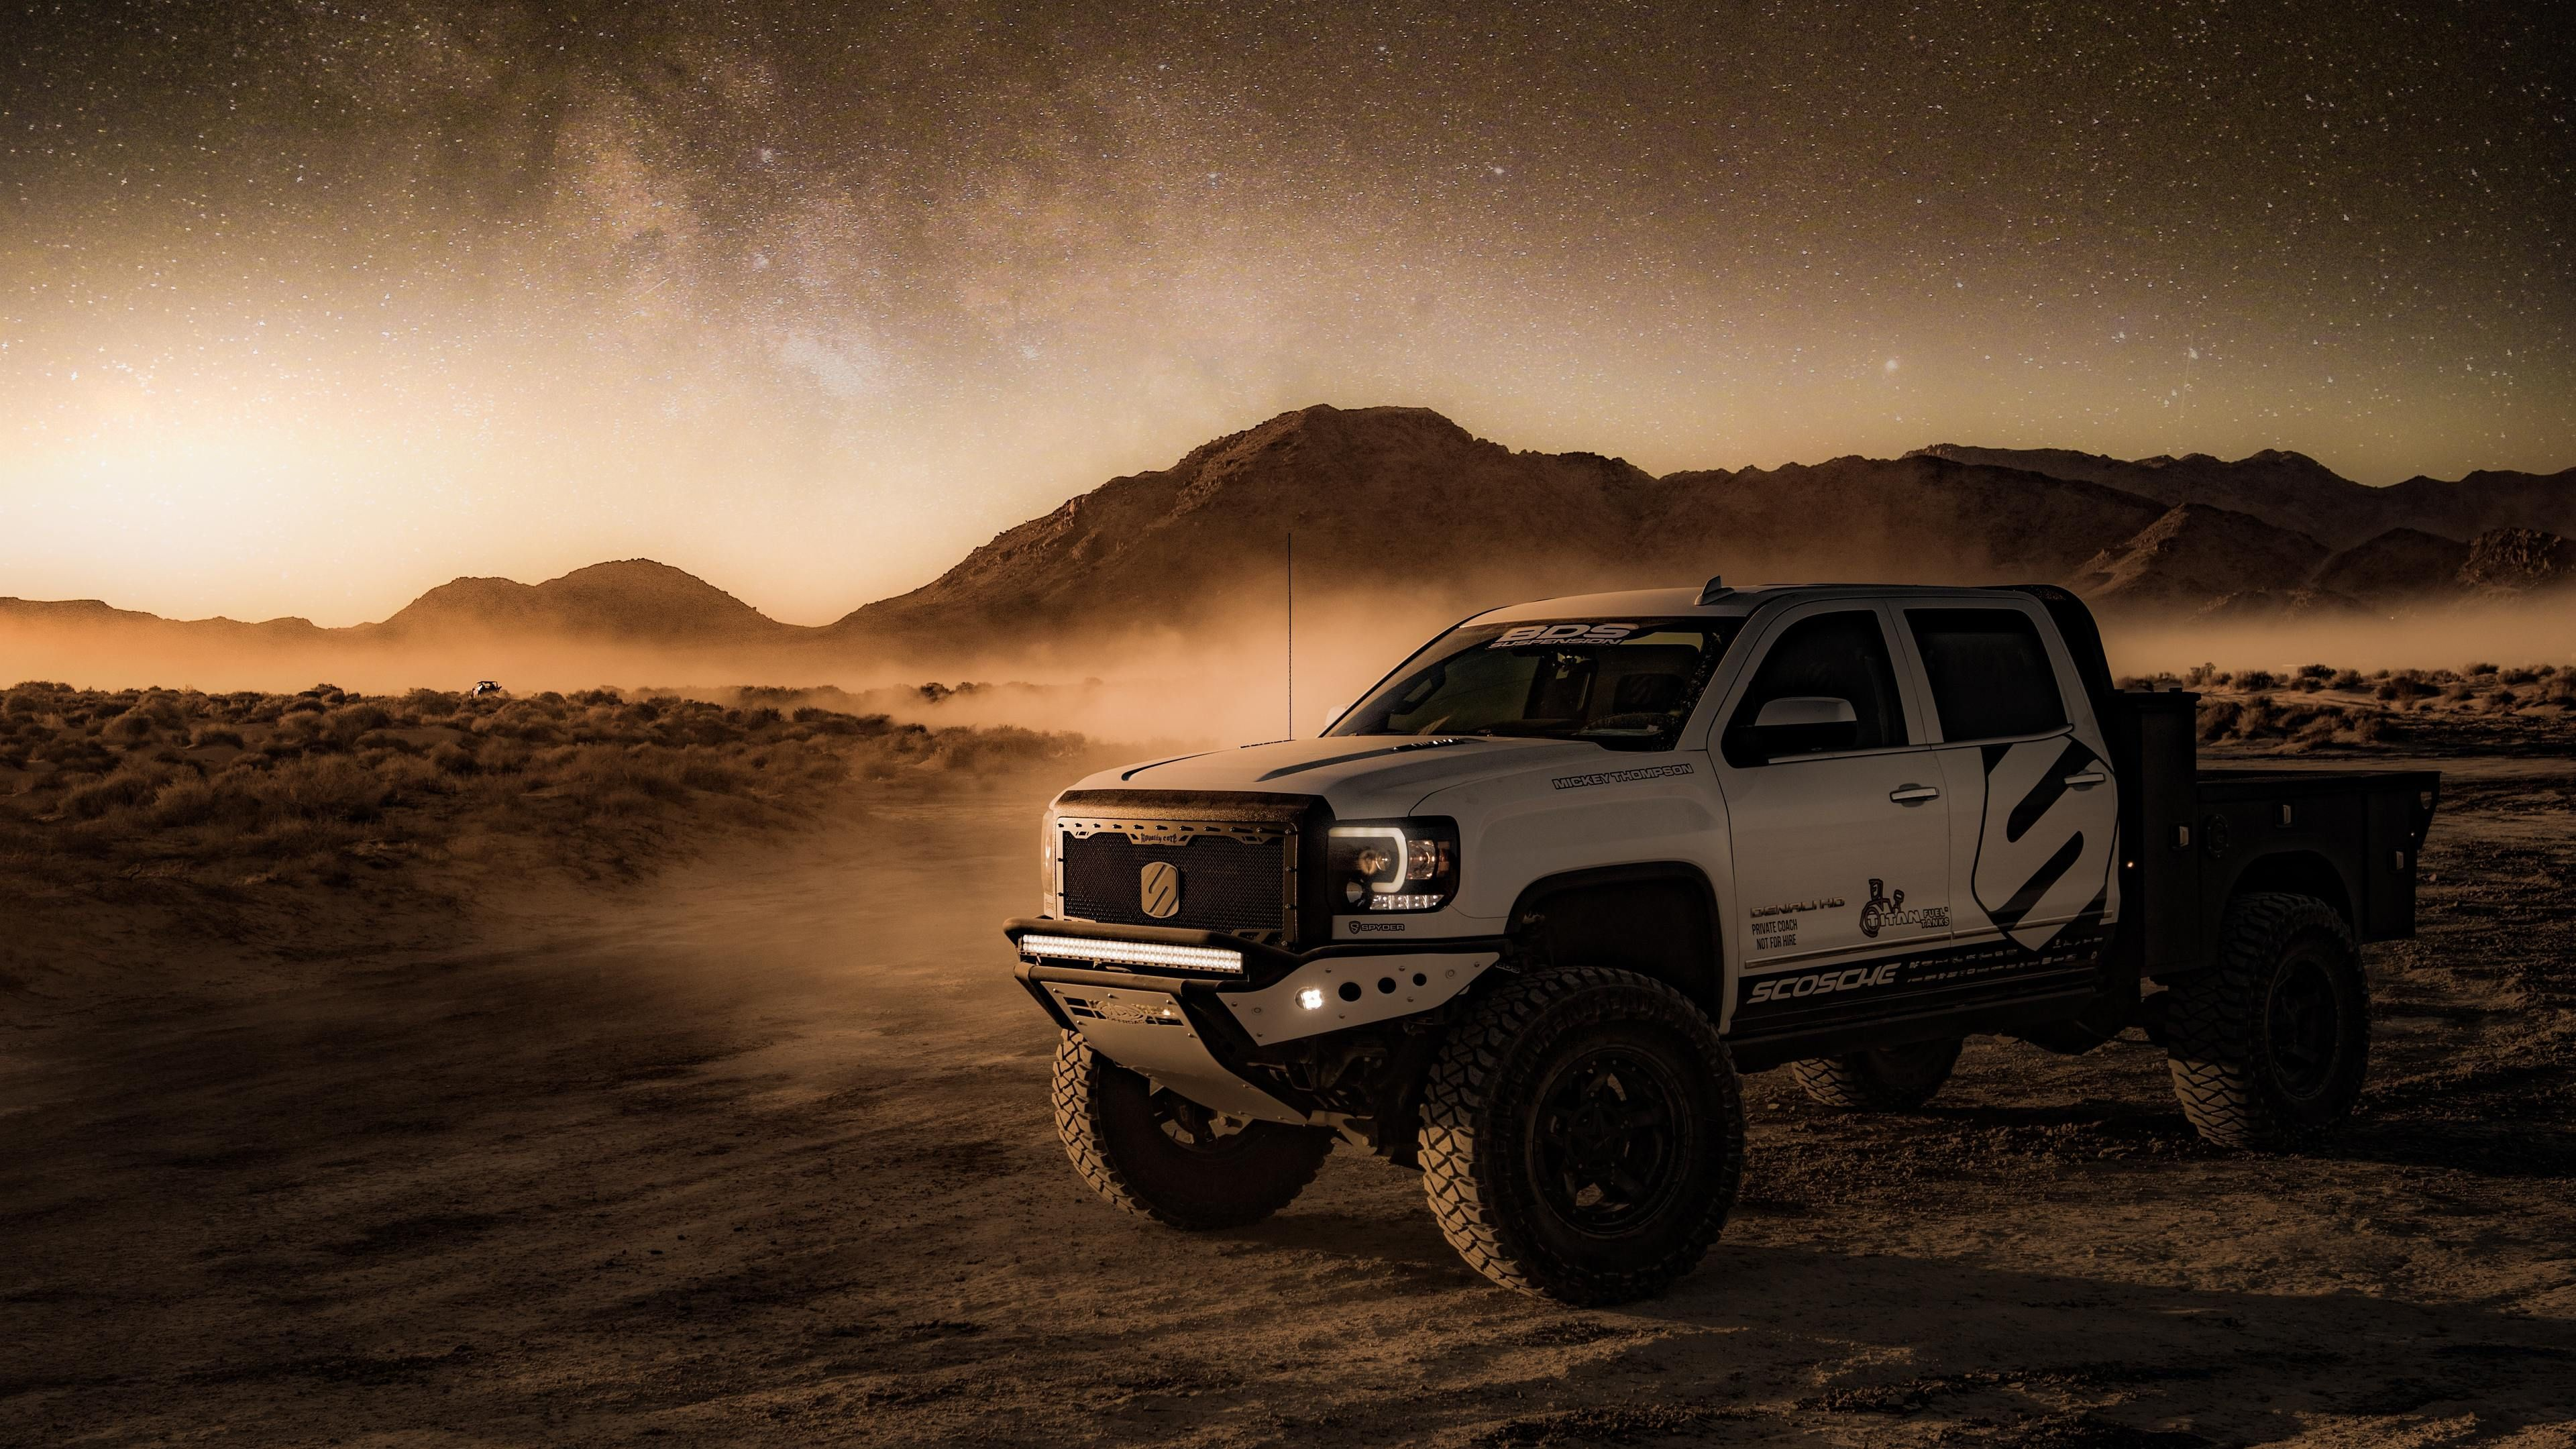 Off Road Truck Wallpapers Top Free Off Road Truck Backgrounds Wallpaperaccess